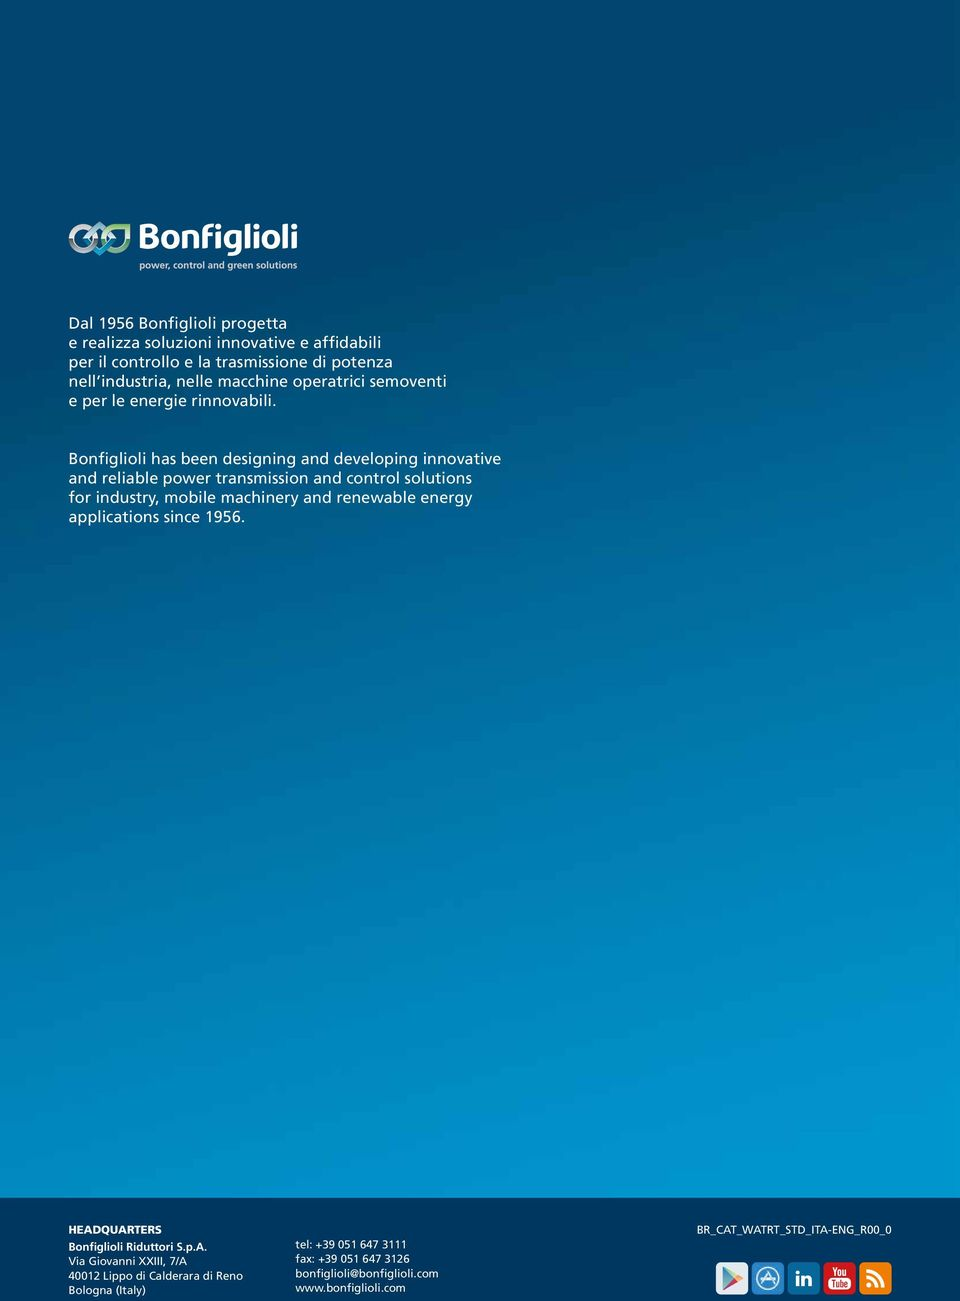 Bonfiglioli has been designing and developing innovative and reliable power transmission and control solutions for industry, mobile machinery and renewable